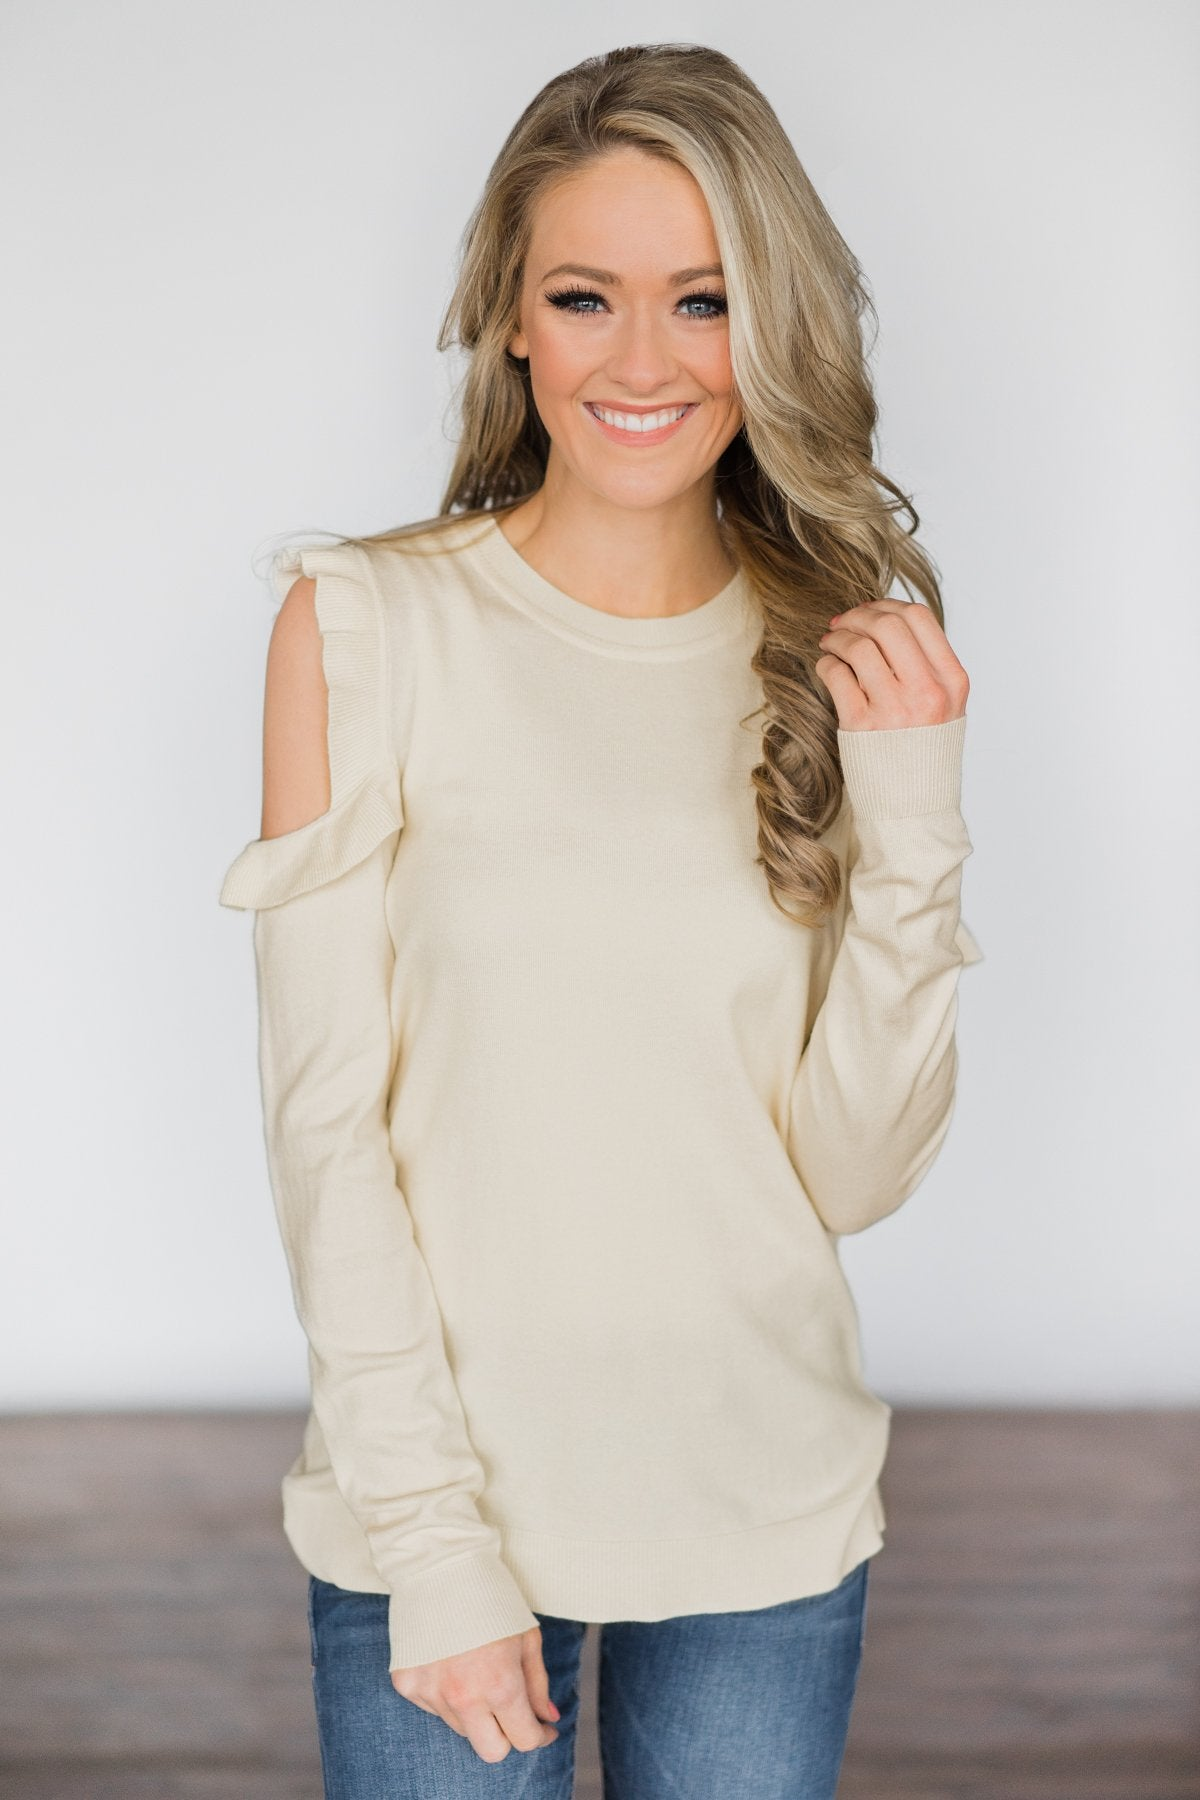 All Ruffled Up Cream Cold Shoulder Top